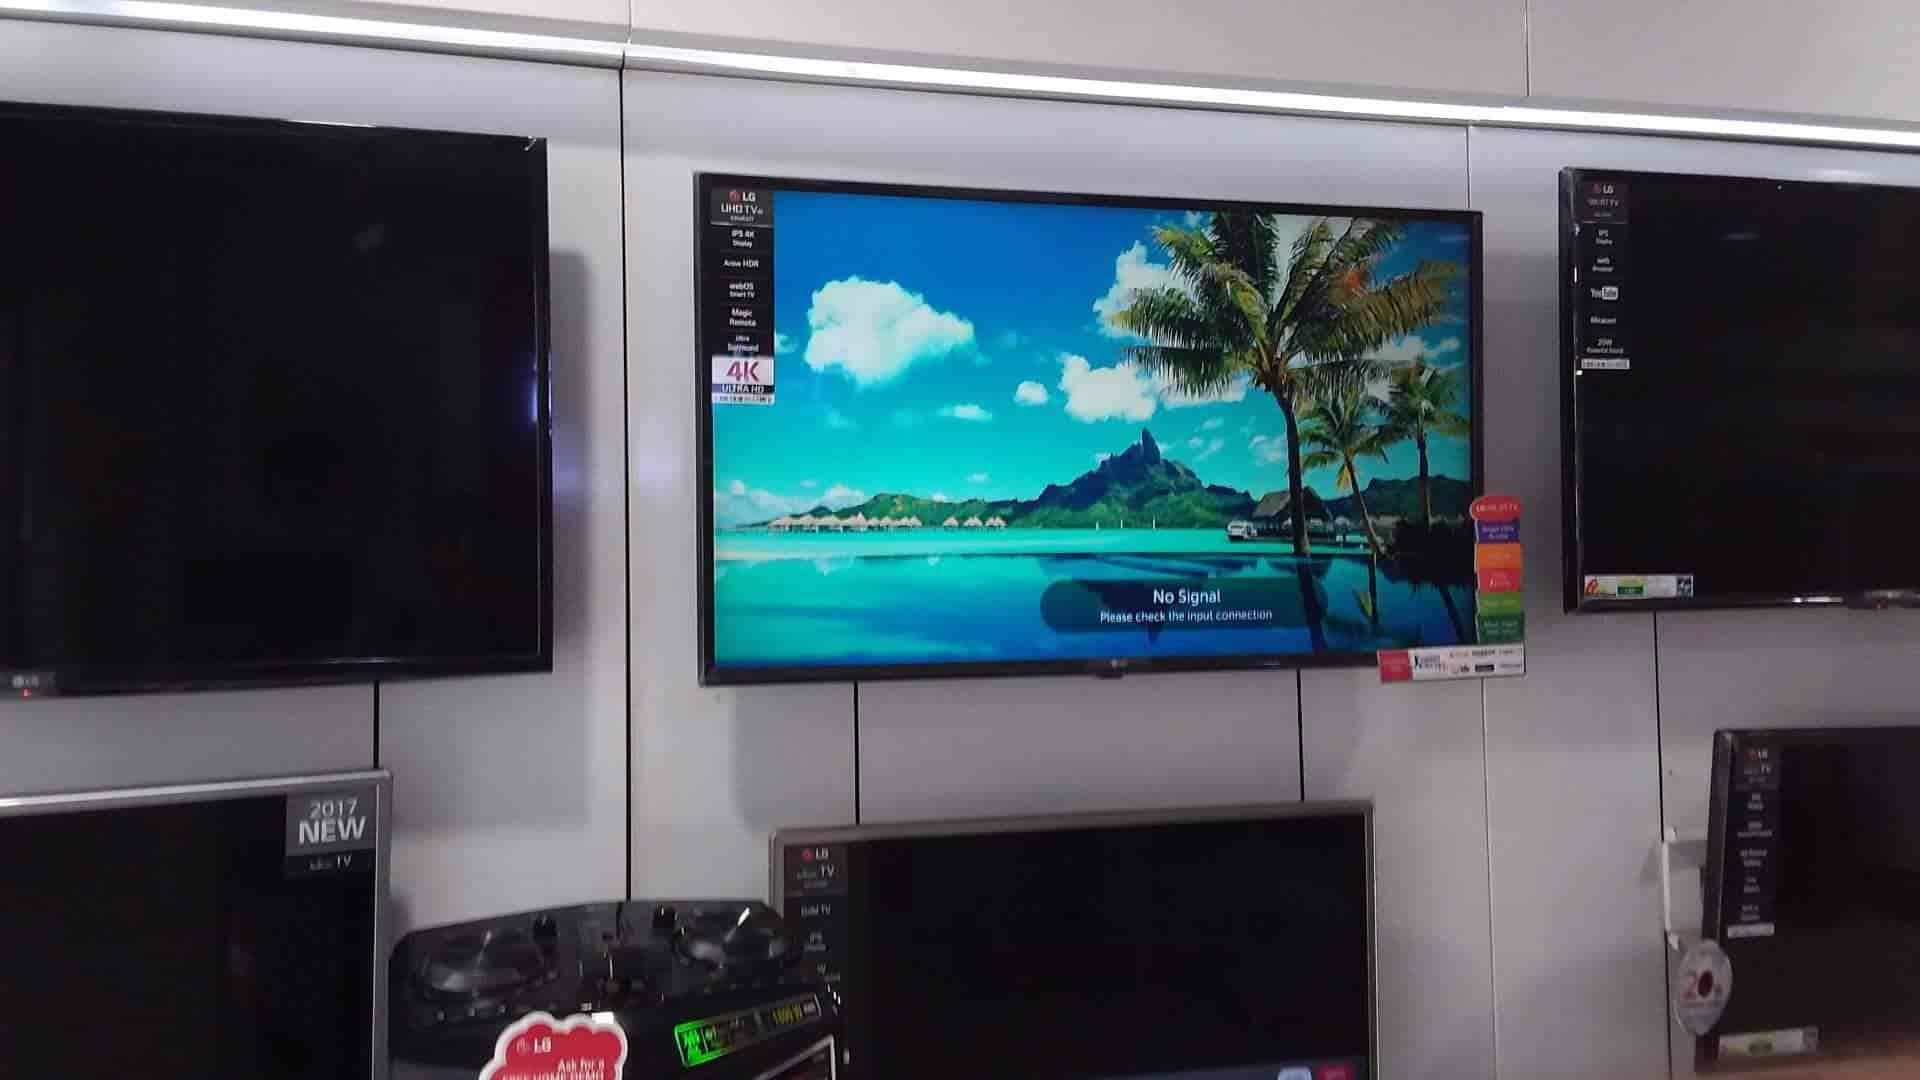 Lg Shoppe, Vaishali Sector 4 - Electronic Goods Showrooms in